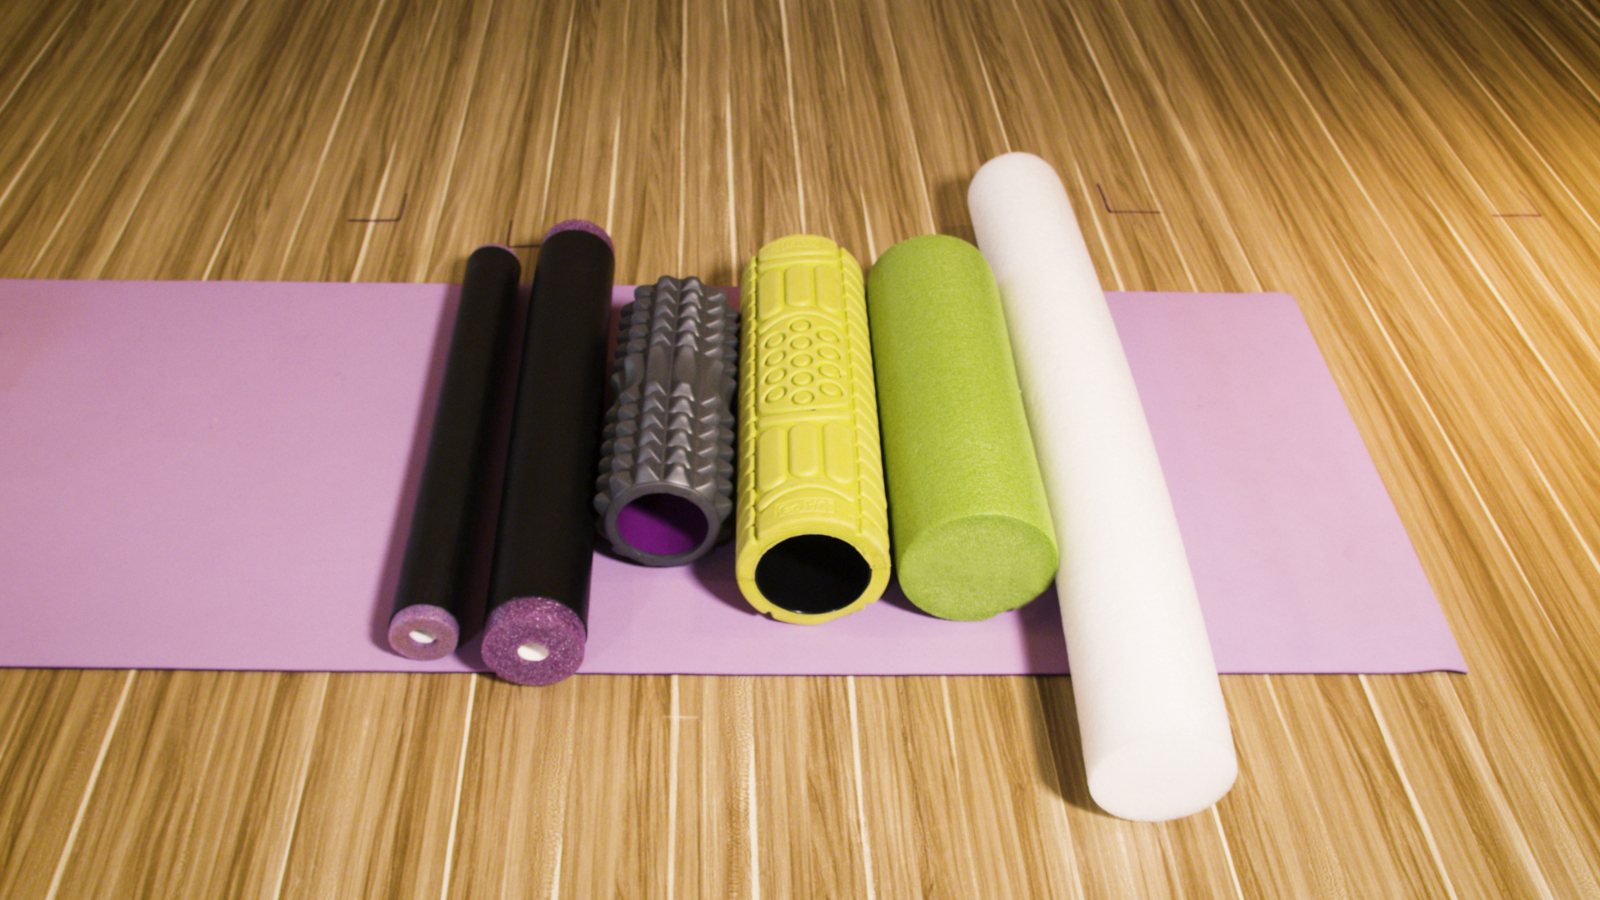 Comparison photo of different foam rollers from above